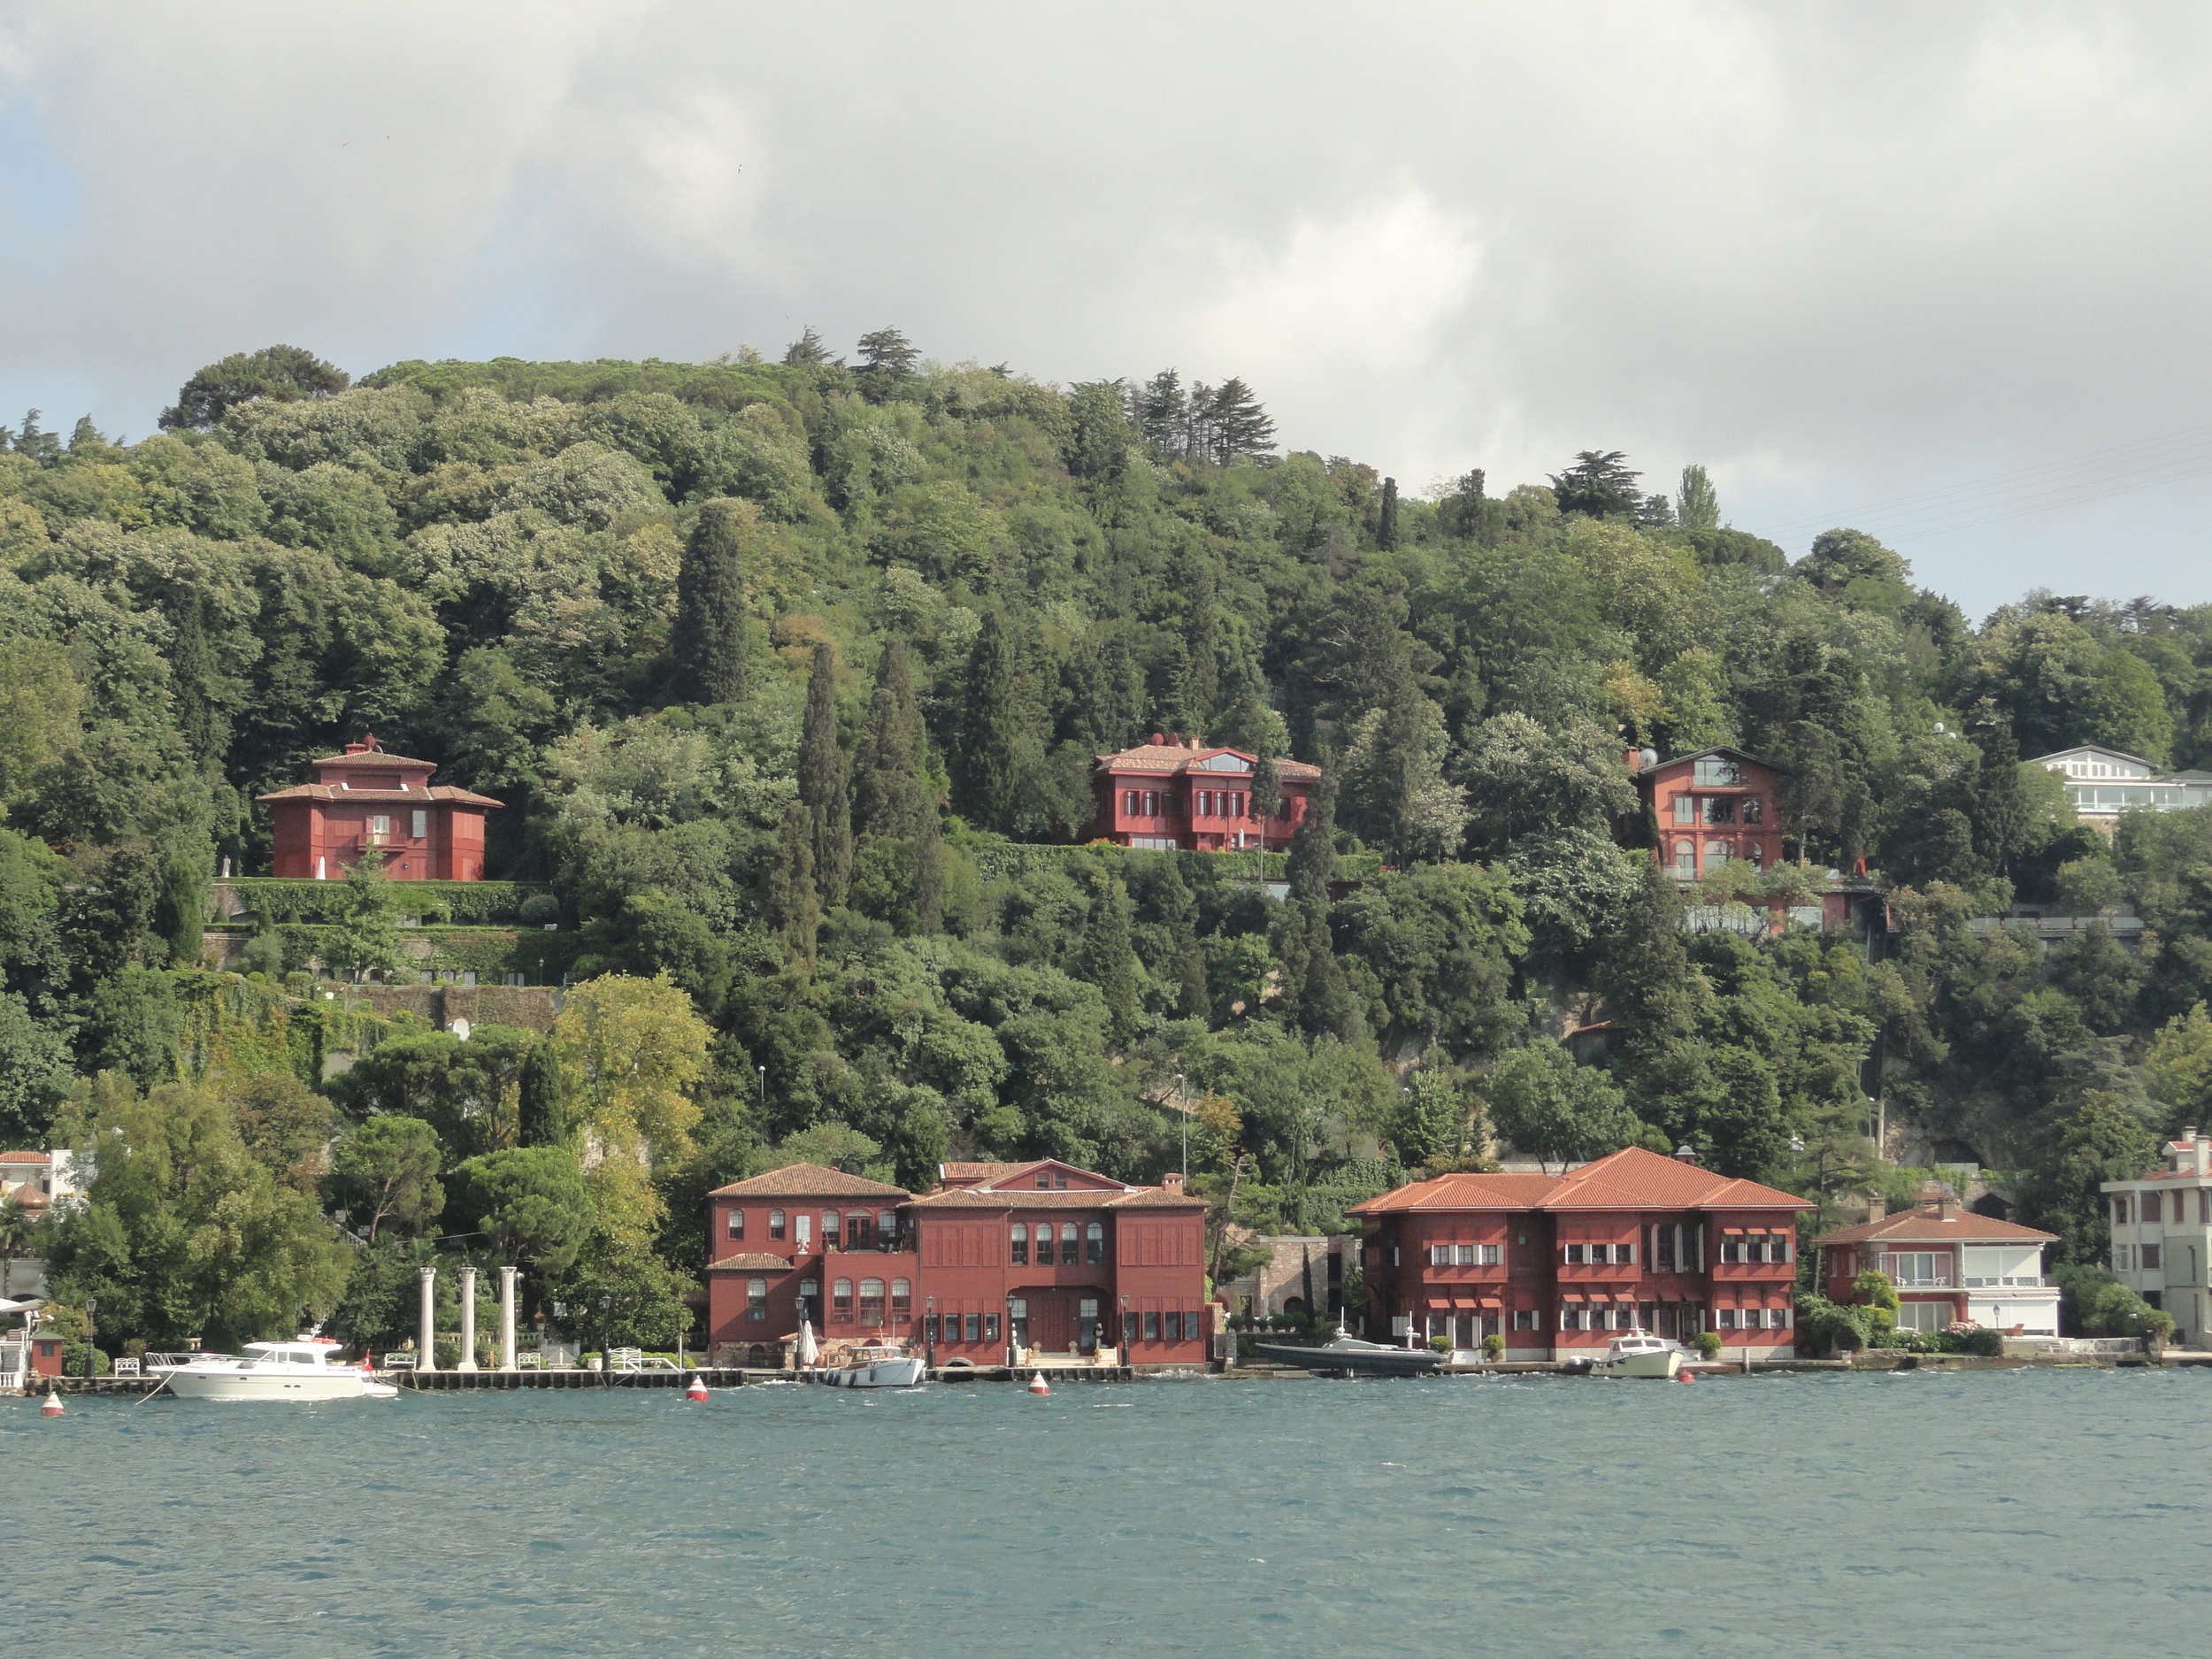 According to our guide, the property along the Bosphorous is some of the most expensive in the world. The person who owns all 5 red houses here paid over a  BILLION US dollars!